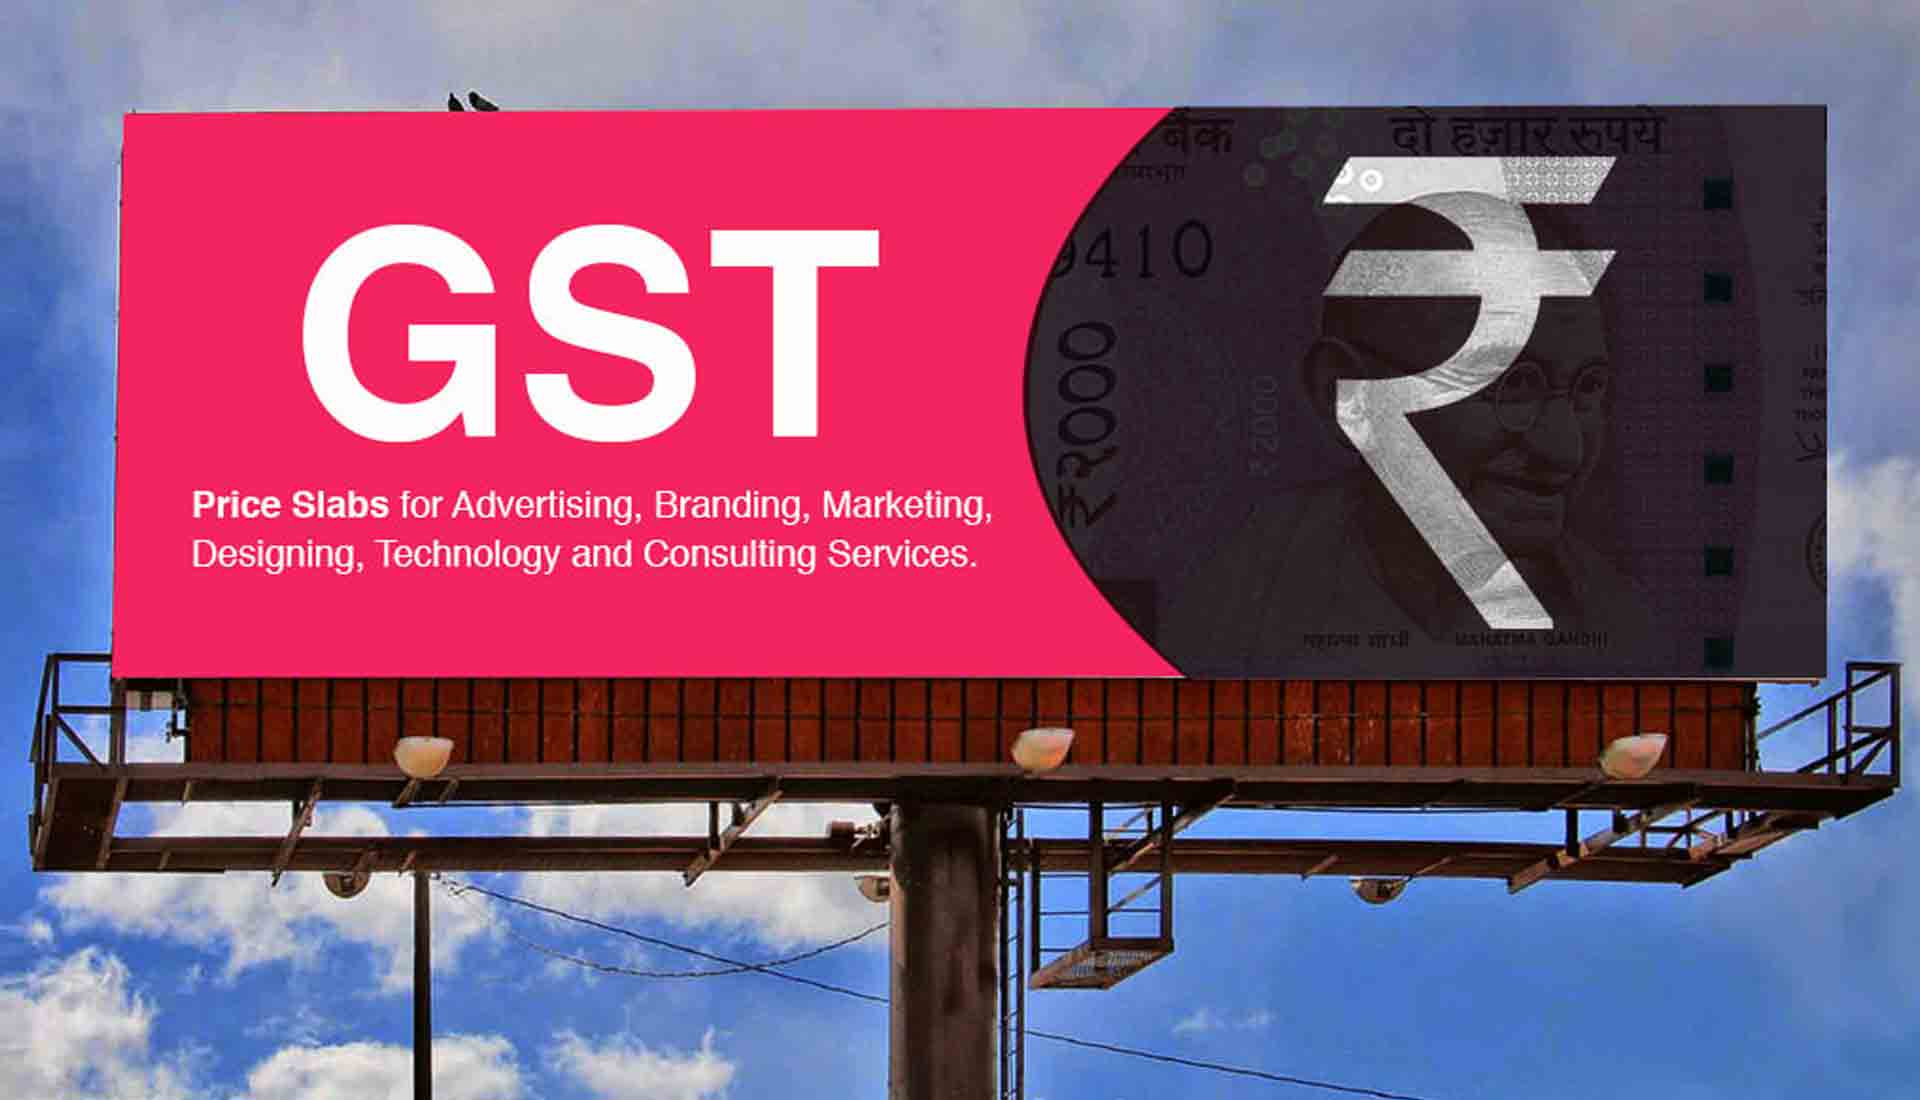 GST-Price-Slabs-for-Advertising,-Branding,-Marketing,-Designing,-Technology-and-Consulting-Services